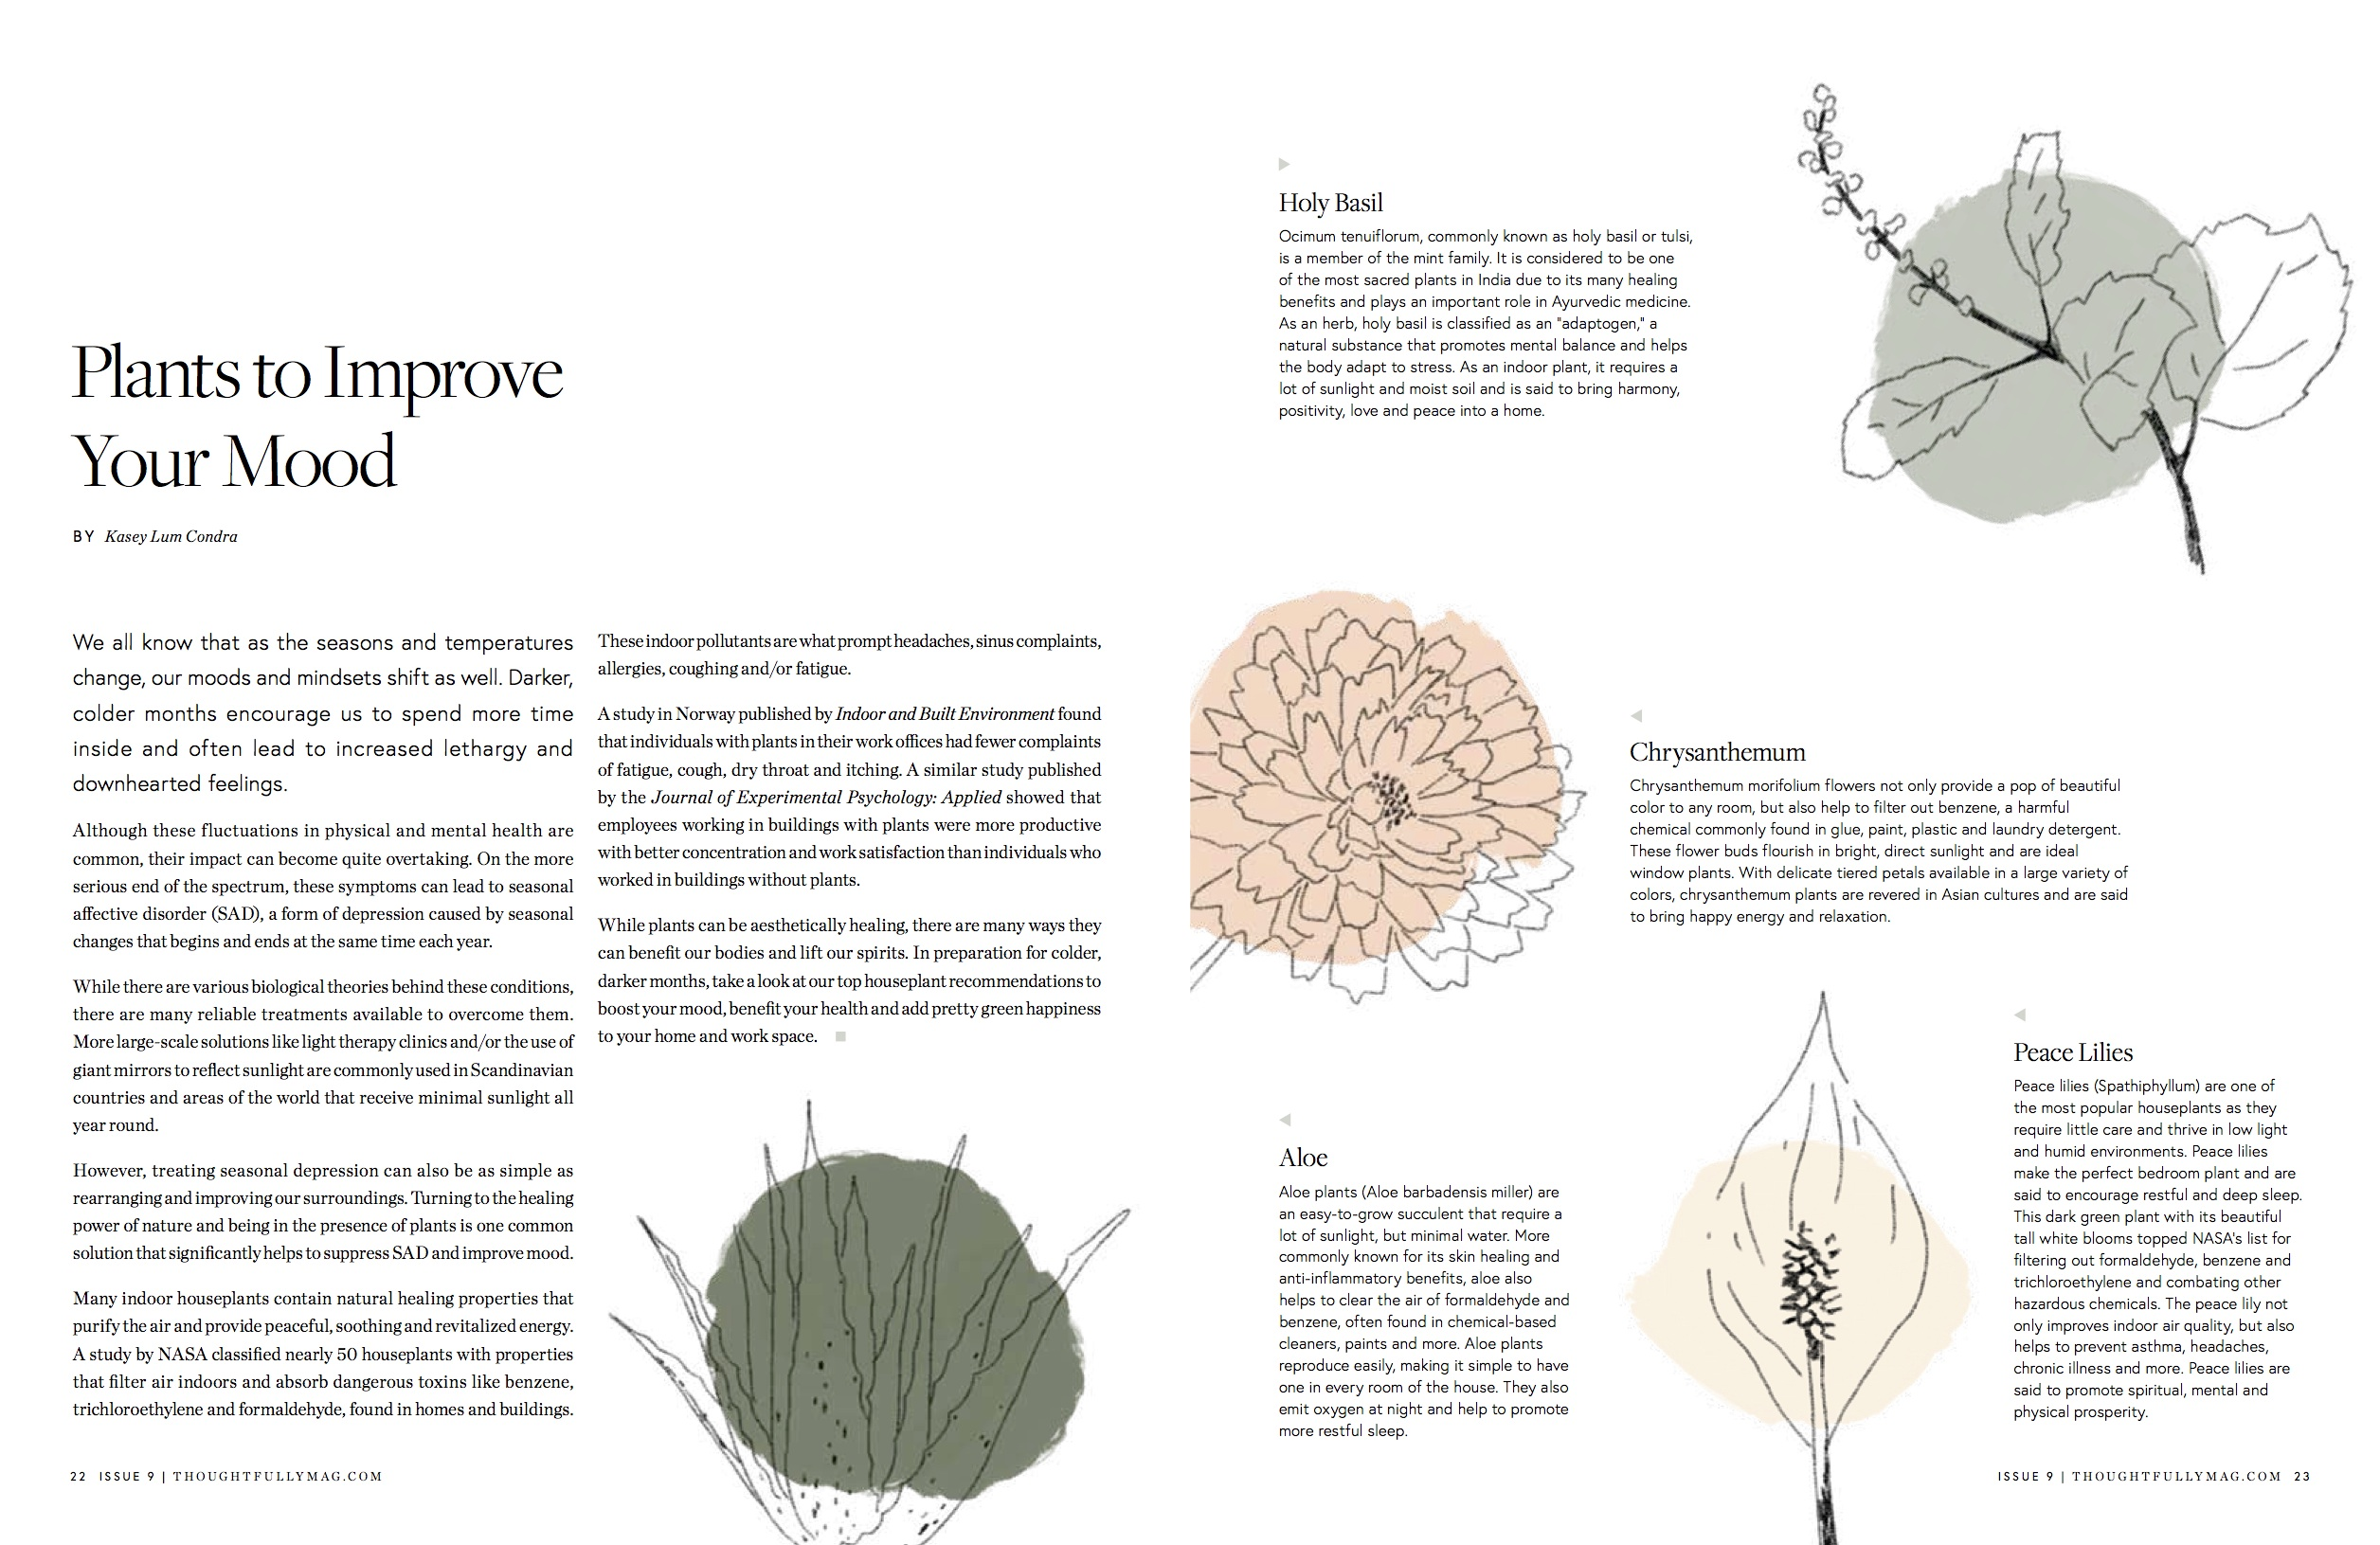 Thoughtfully issue9 plants draft 1